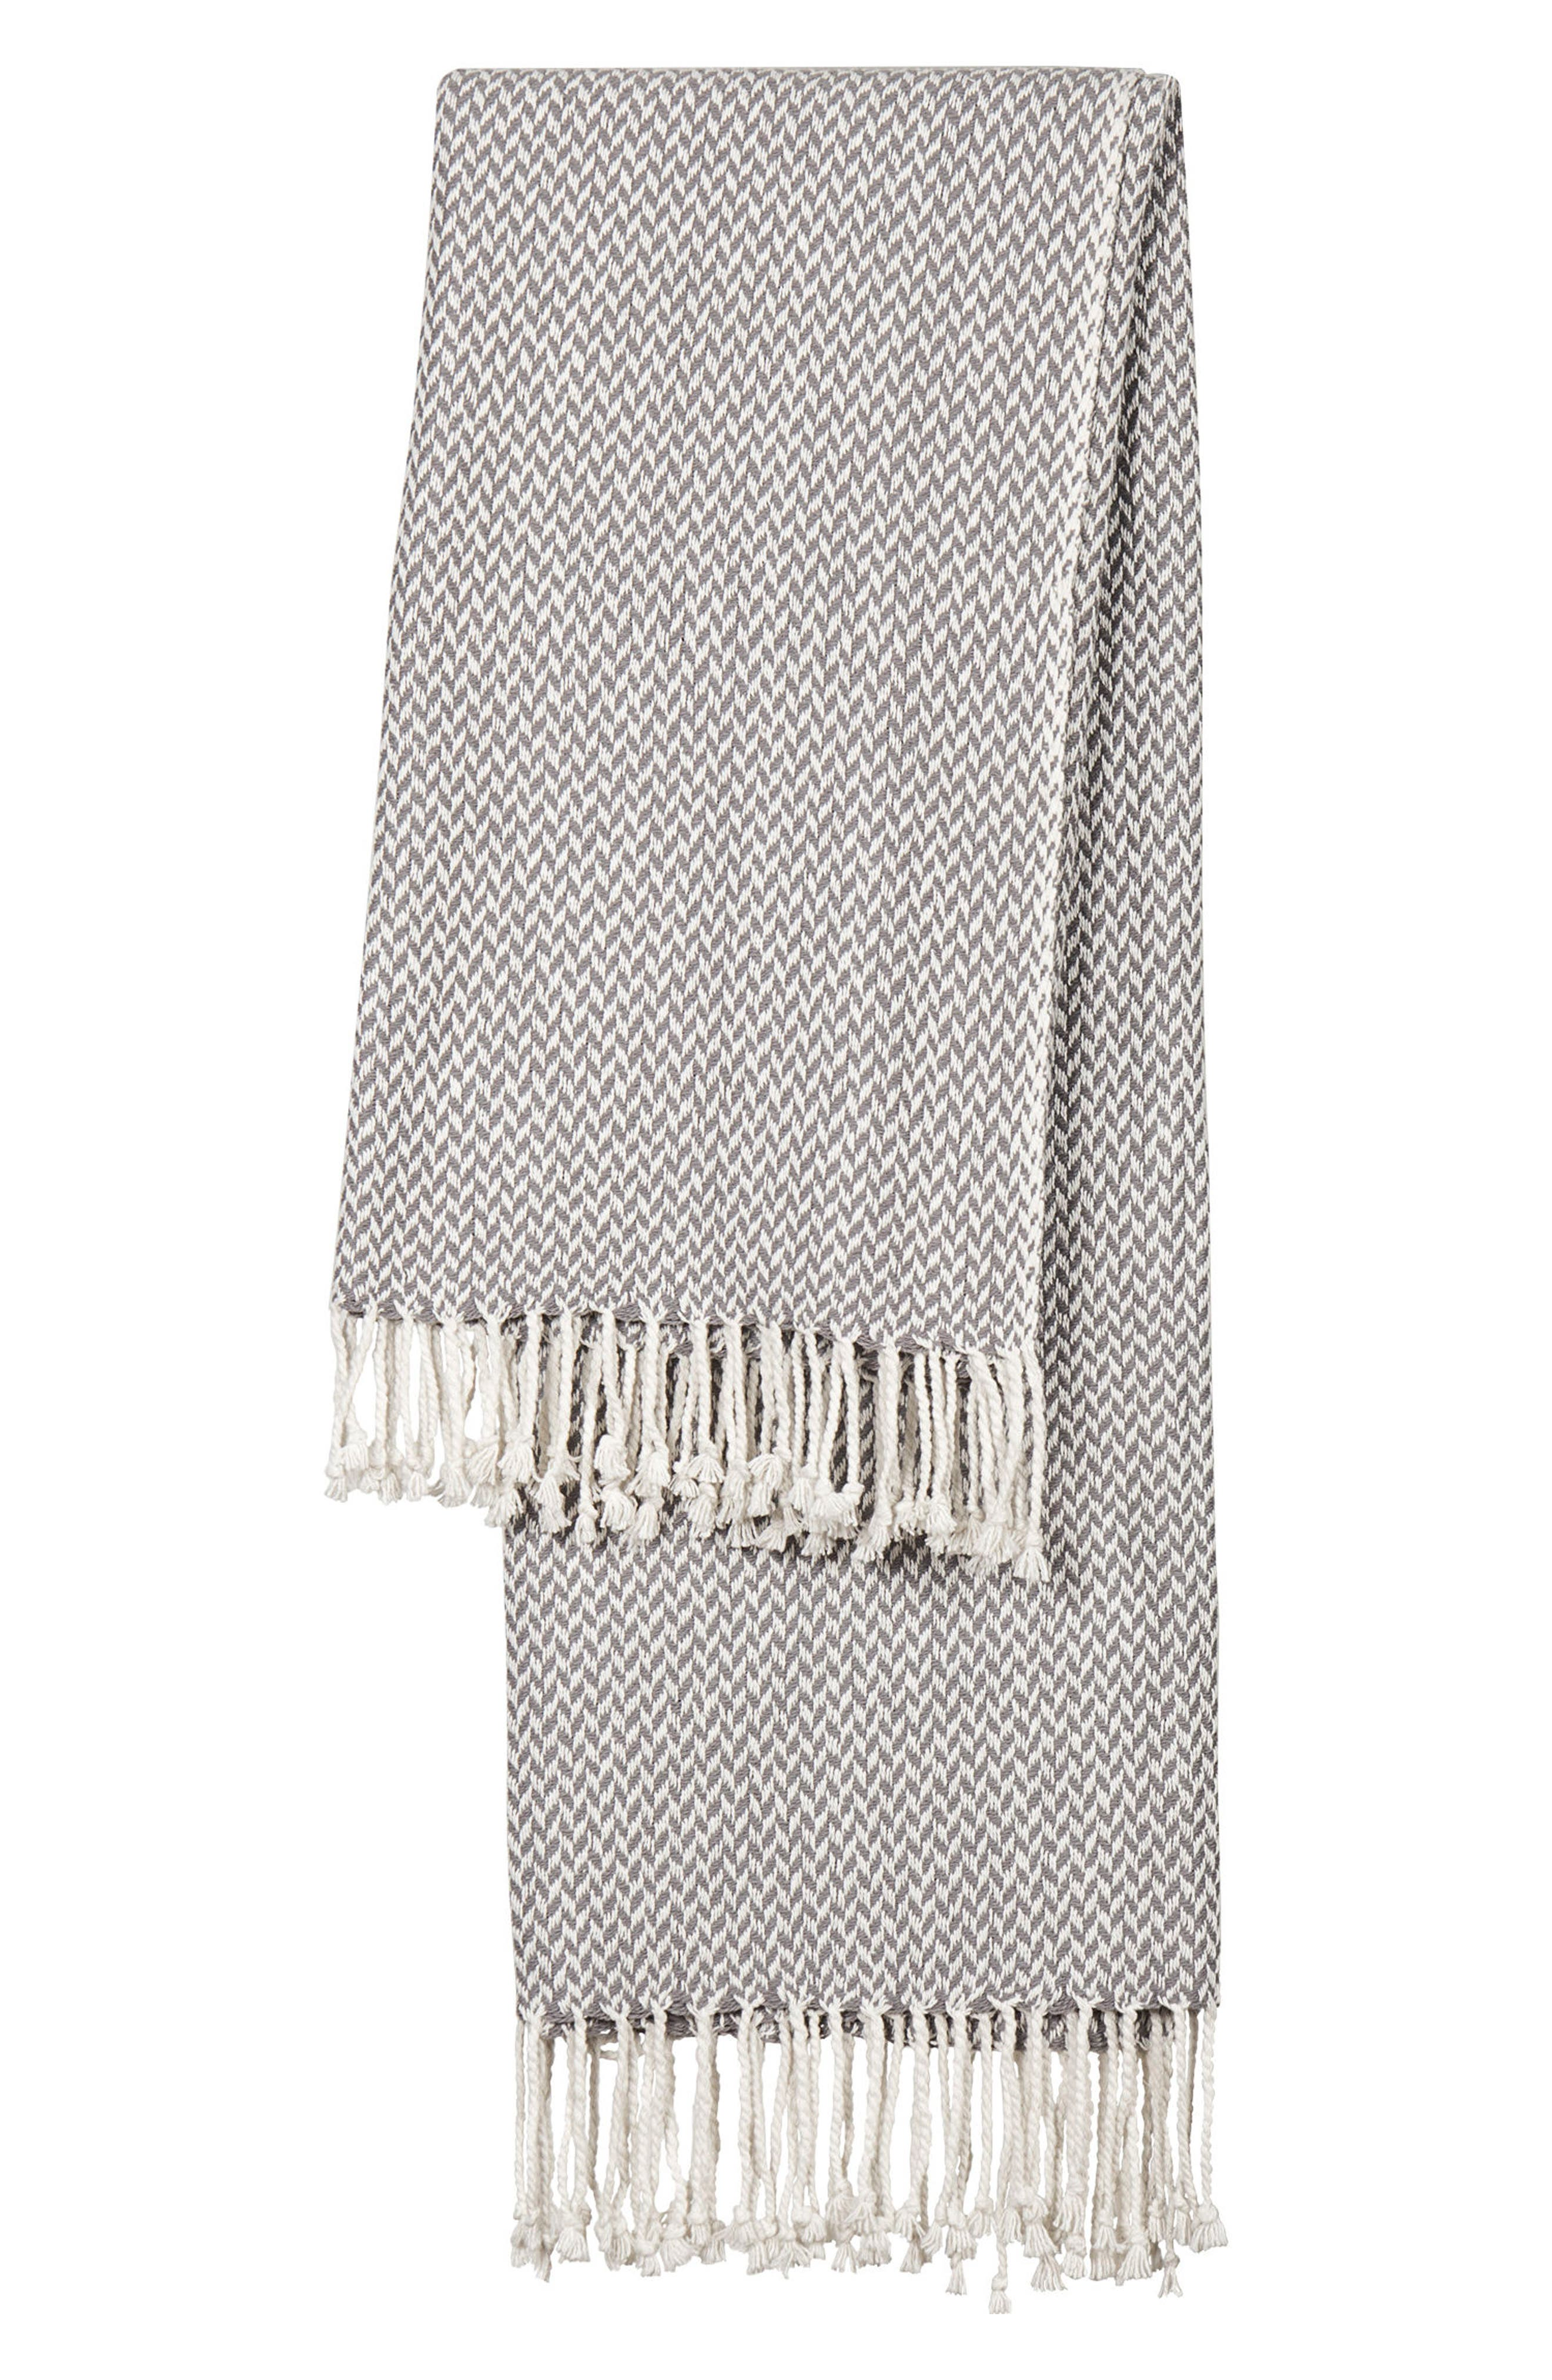 Monogram Herringbone Throw Blanket,                             Main thumbnail 1, color,                             020